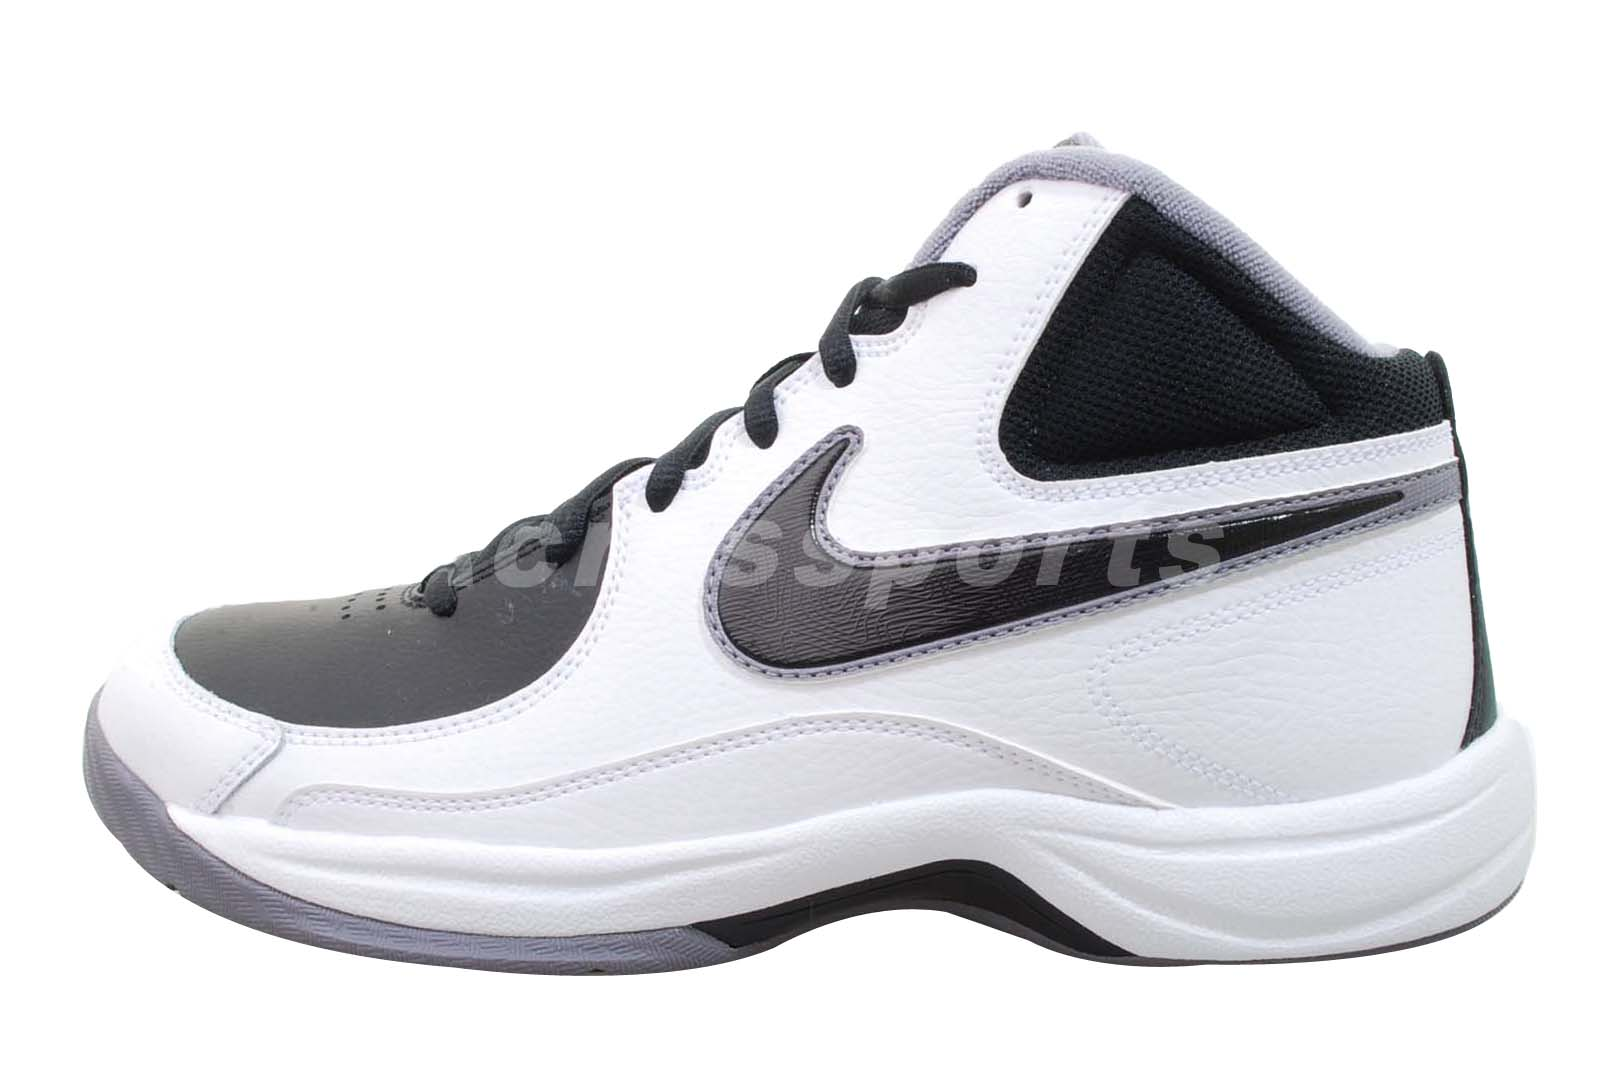 nike the overplay vii white black mens basketball shoes